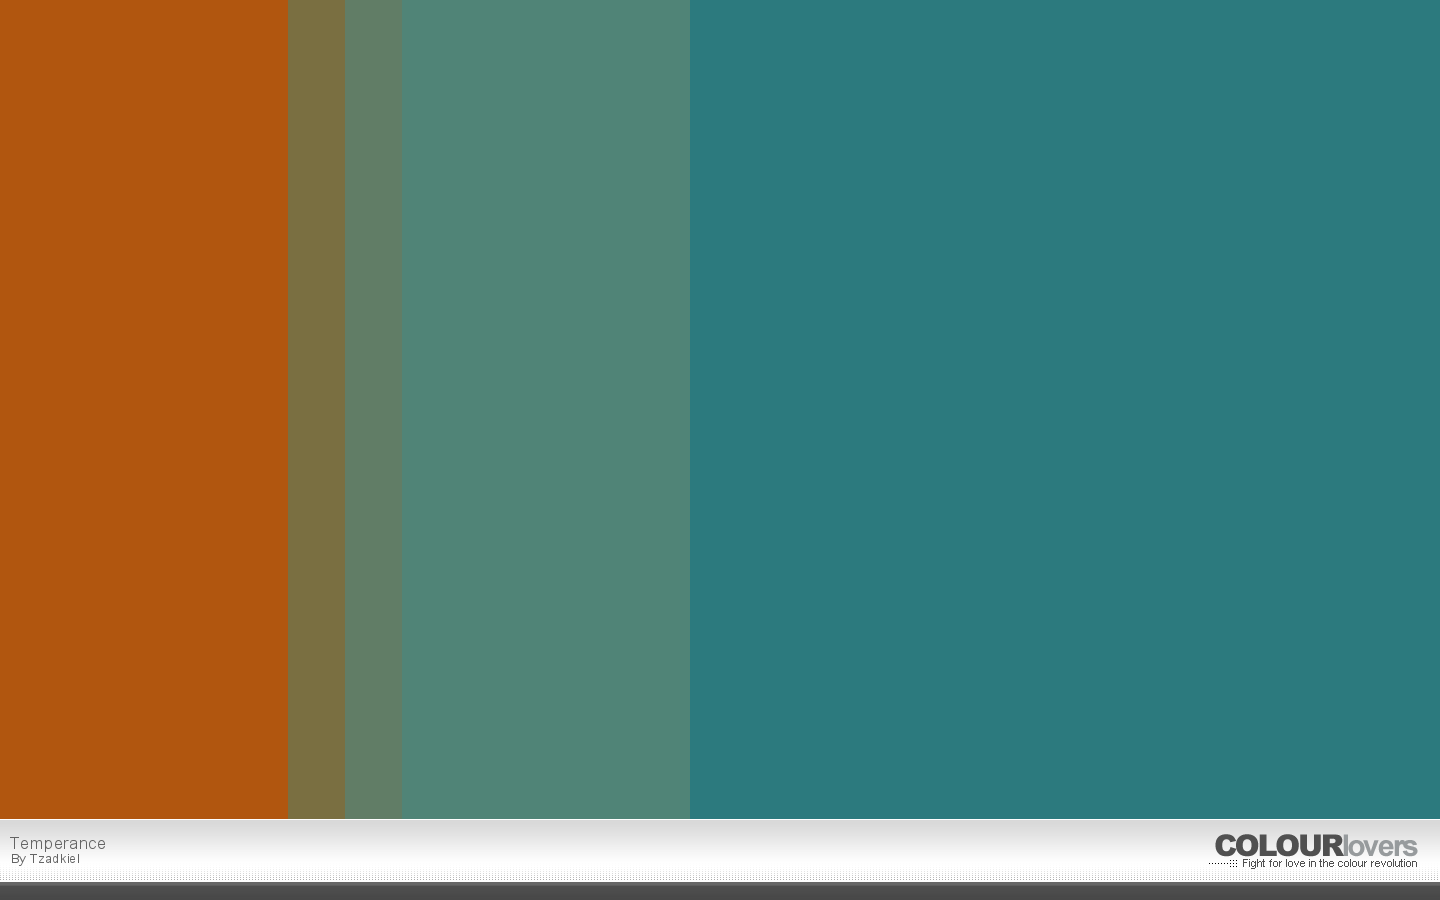 17. temperance - metallic color palettes to try